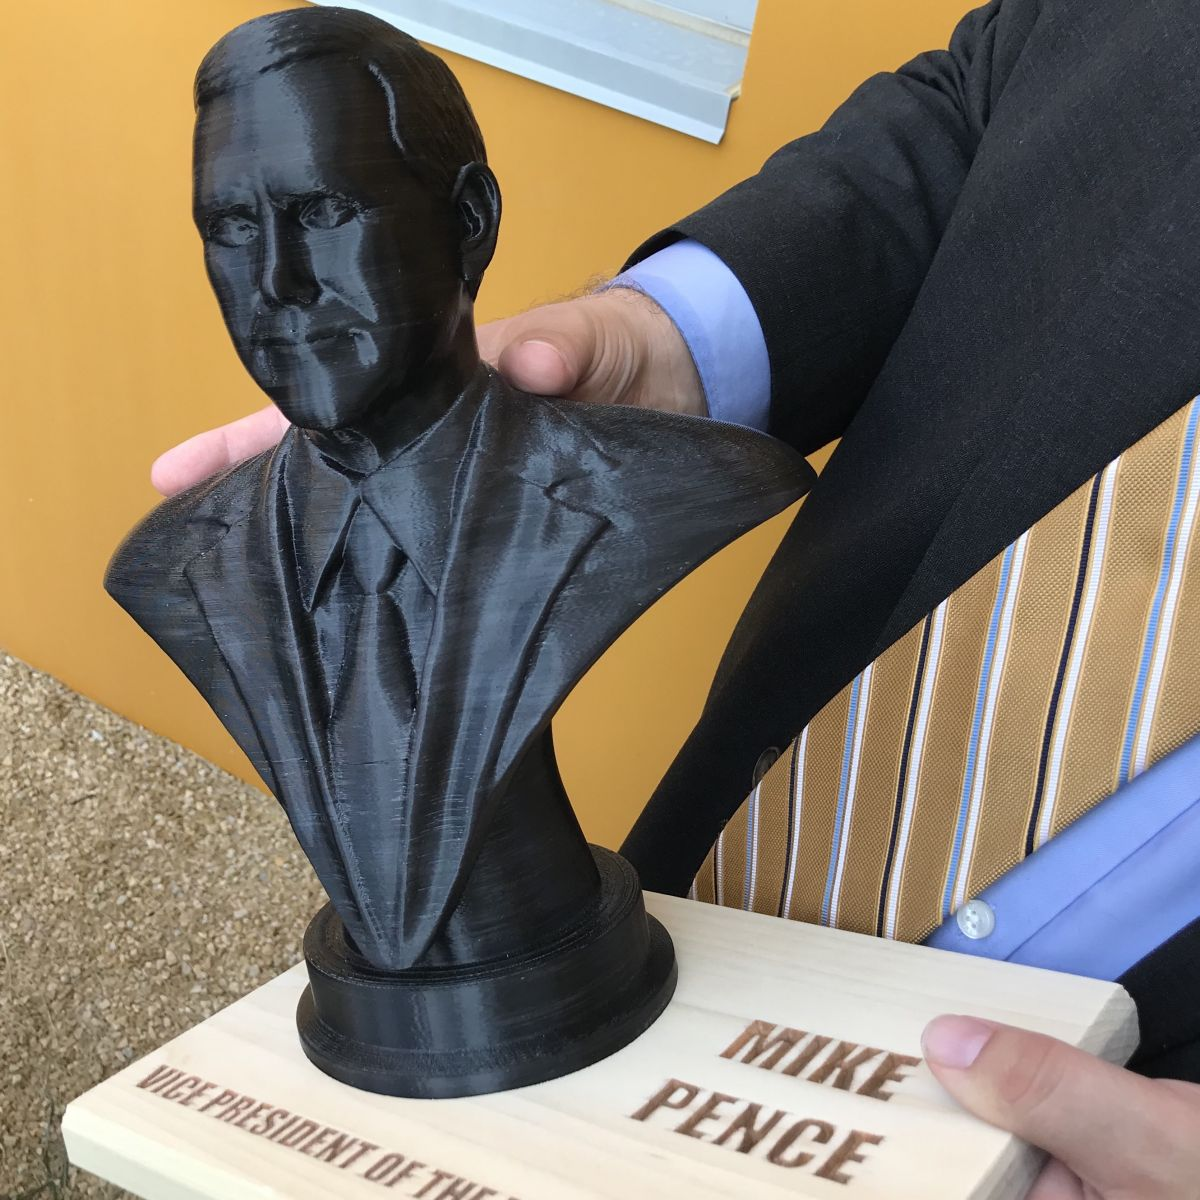 3-D printed bust of Mike Pence